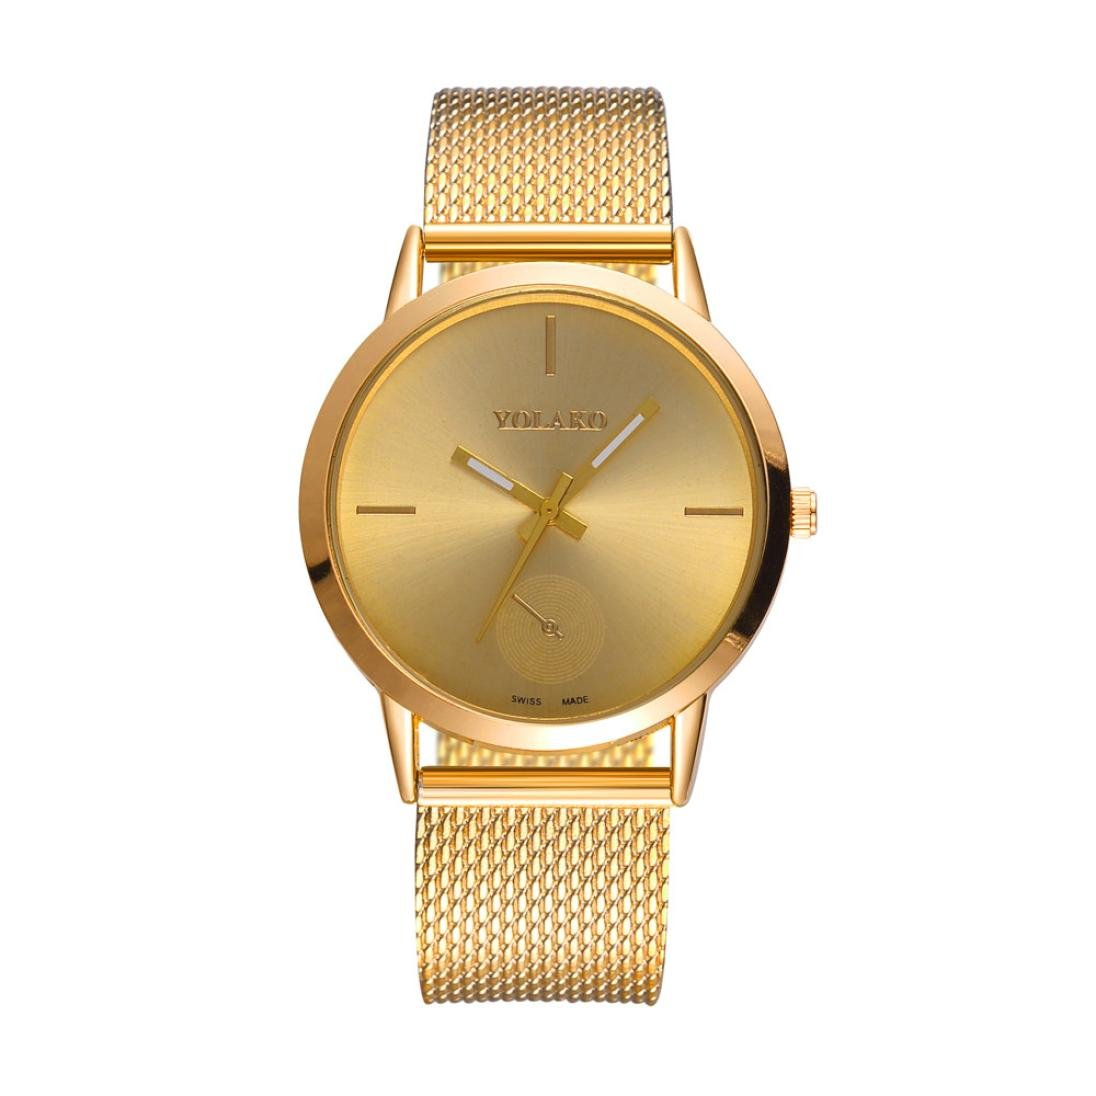 Jaylove 2018 Fashion High Hardness Glass Mirror Men and Women Wristatchs General Mesh Belt PU Leather Quartz Watch (Gold)